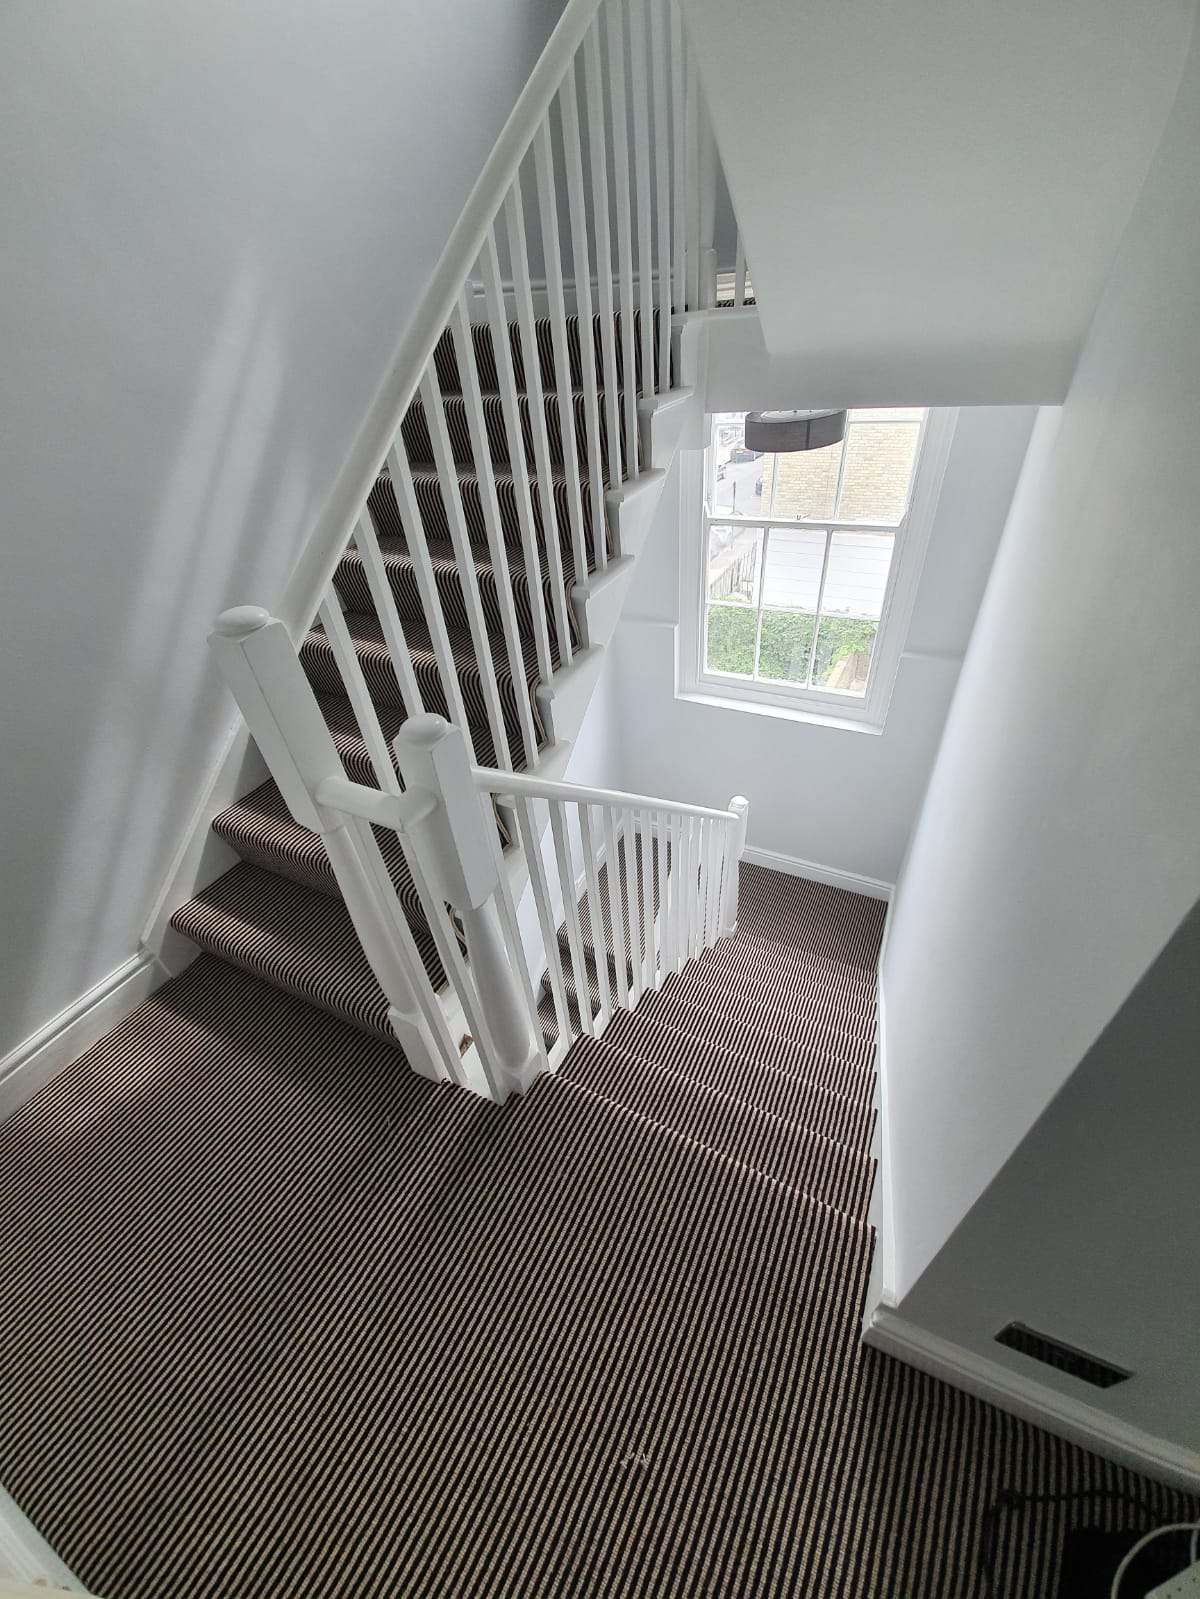 Florco Carpets Sandy Springs Braid Rowan Carpet in Shepherds Bush 2